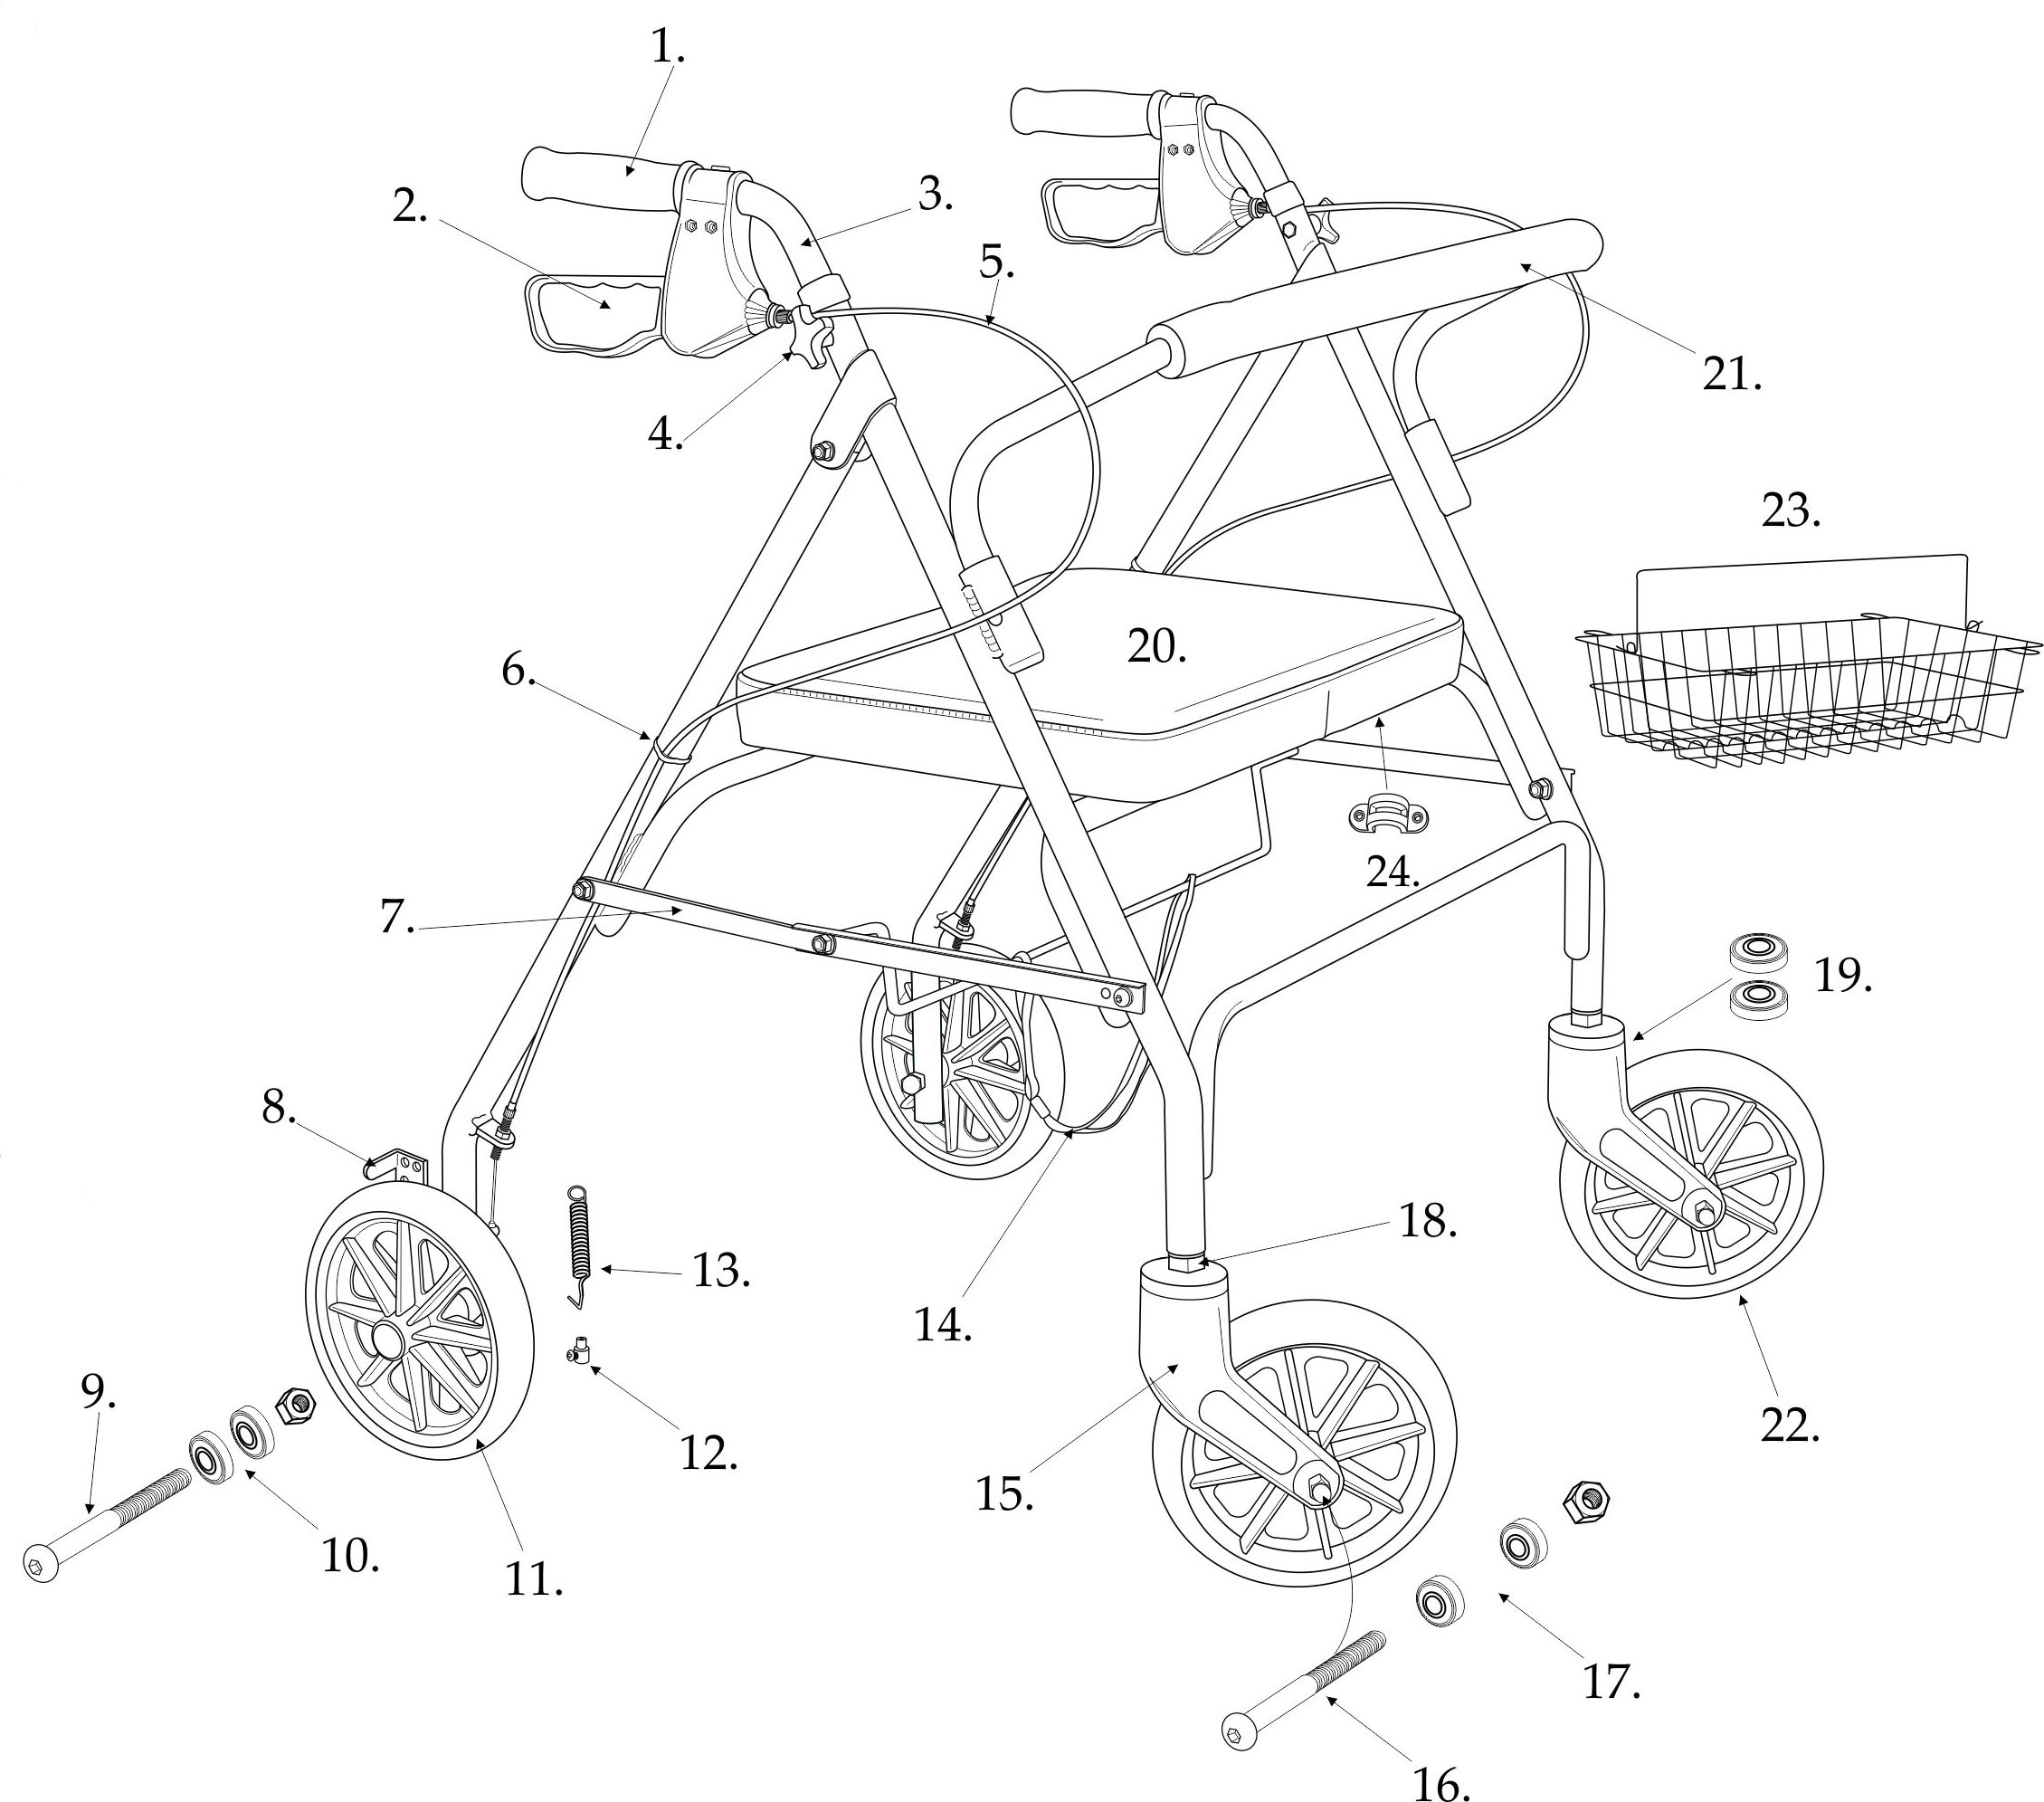 01 - Seat Assembly for Rollator 10215rd or 10215bl-parts10215-parts.jpg